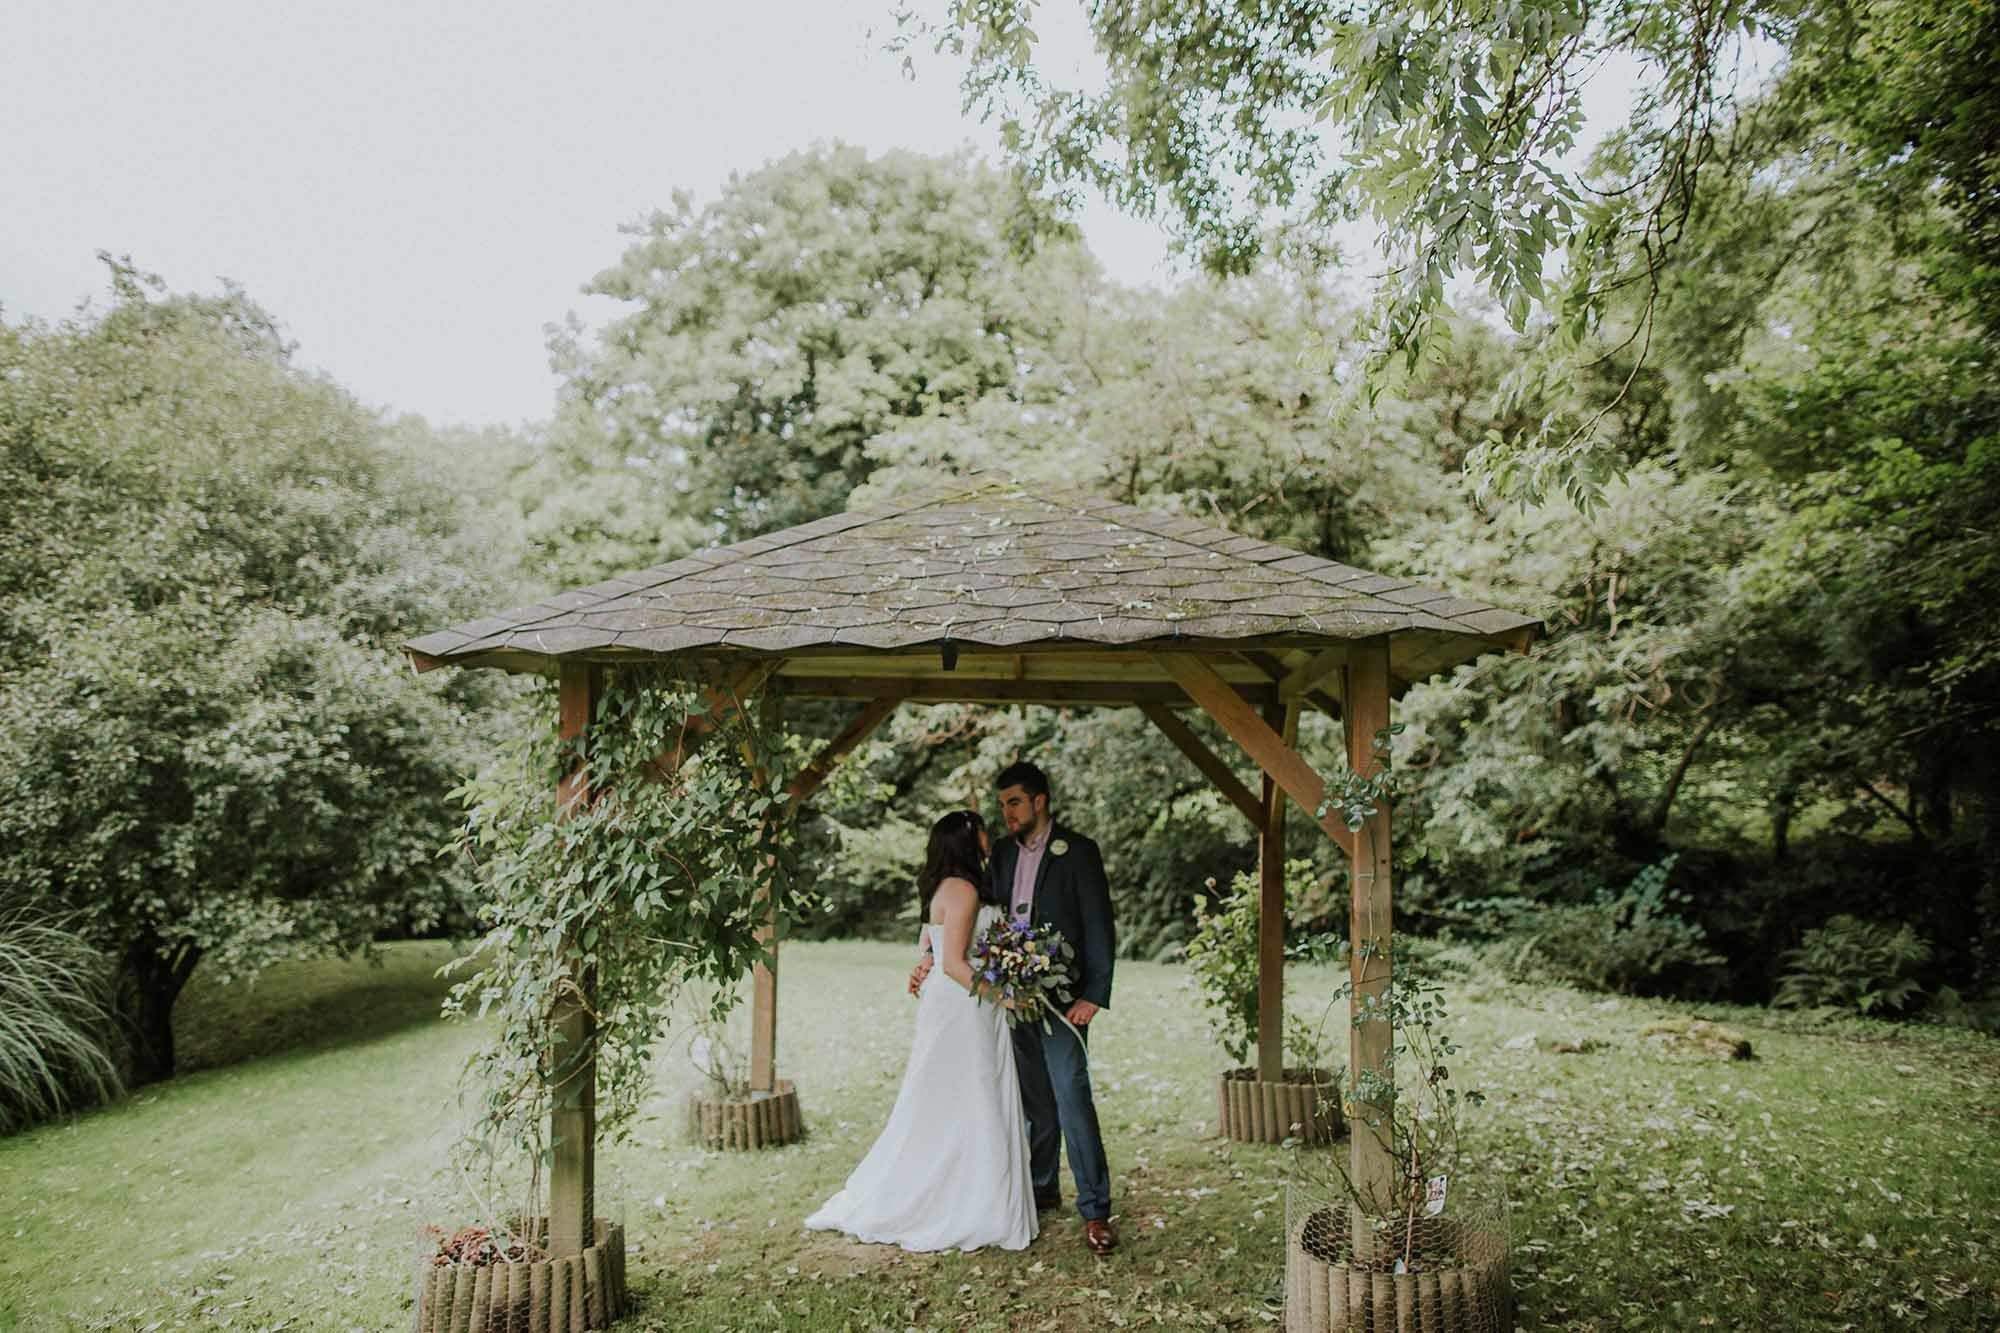 Married couple embracing in a gazebo